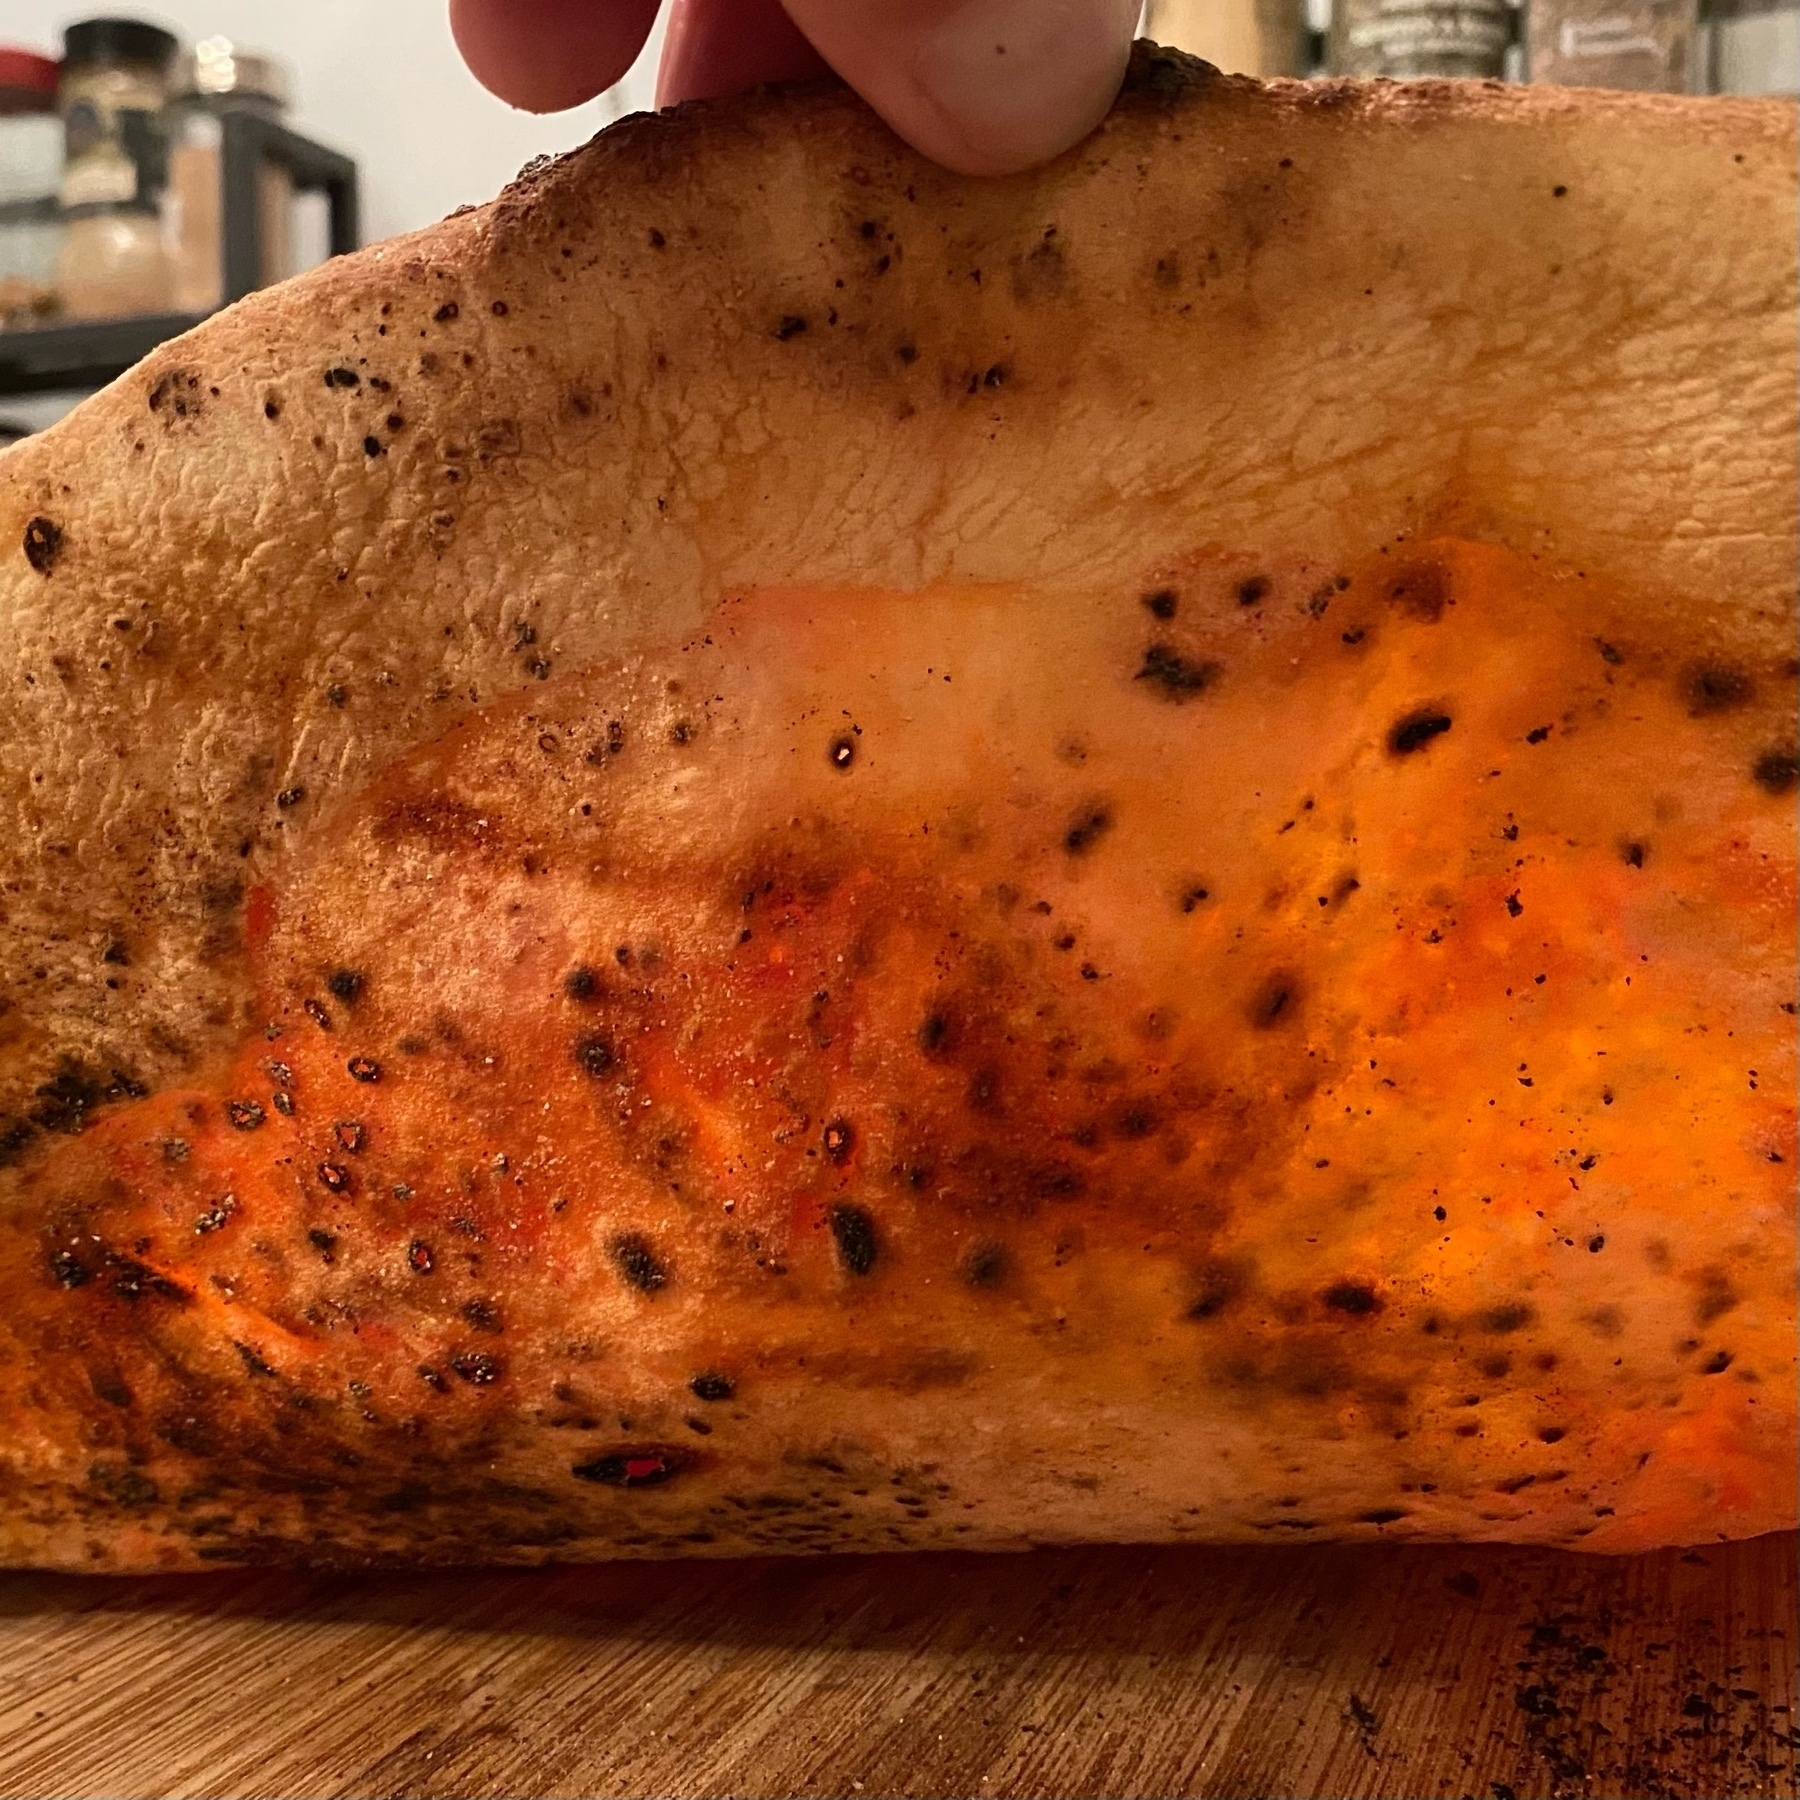 picture of a bottom of a cooked pizza with light shining through a thin crust